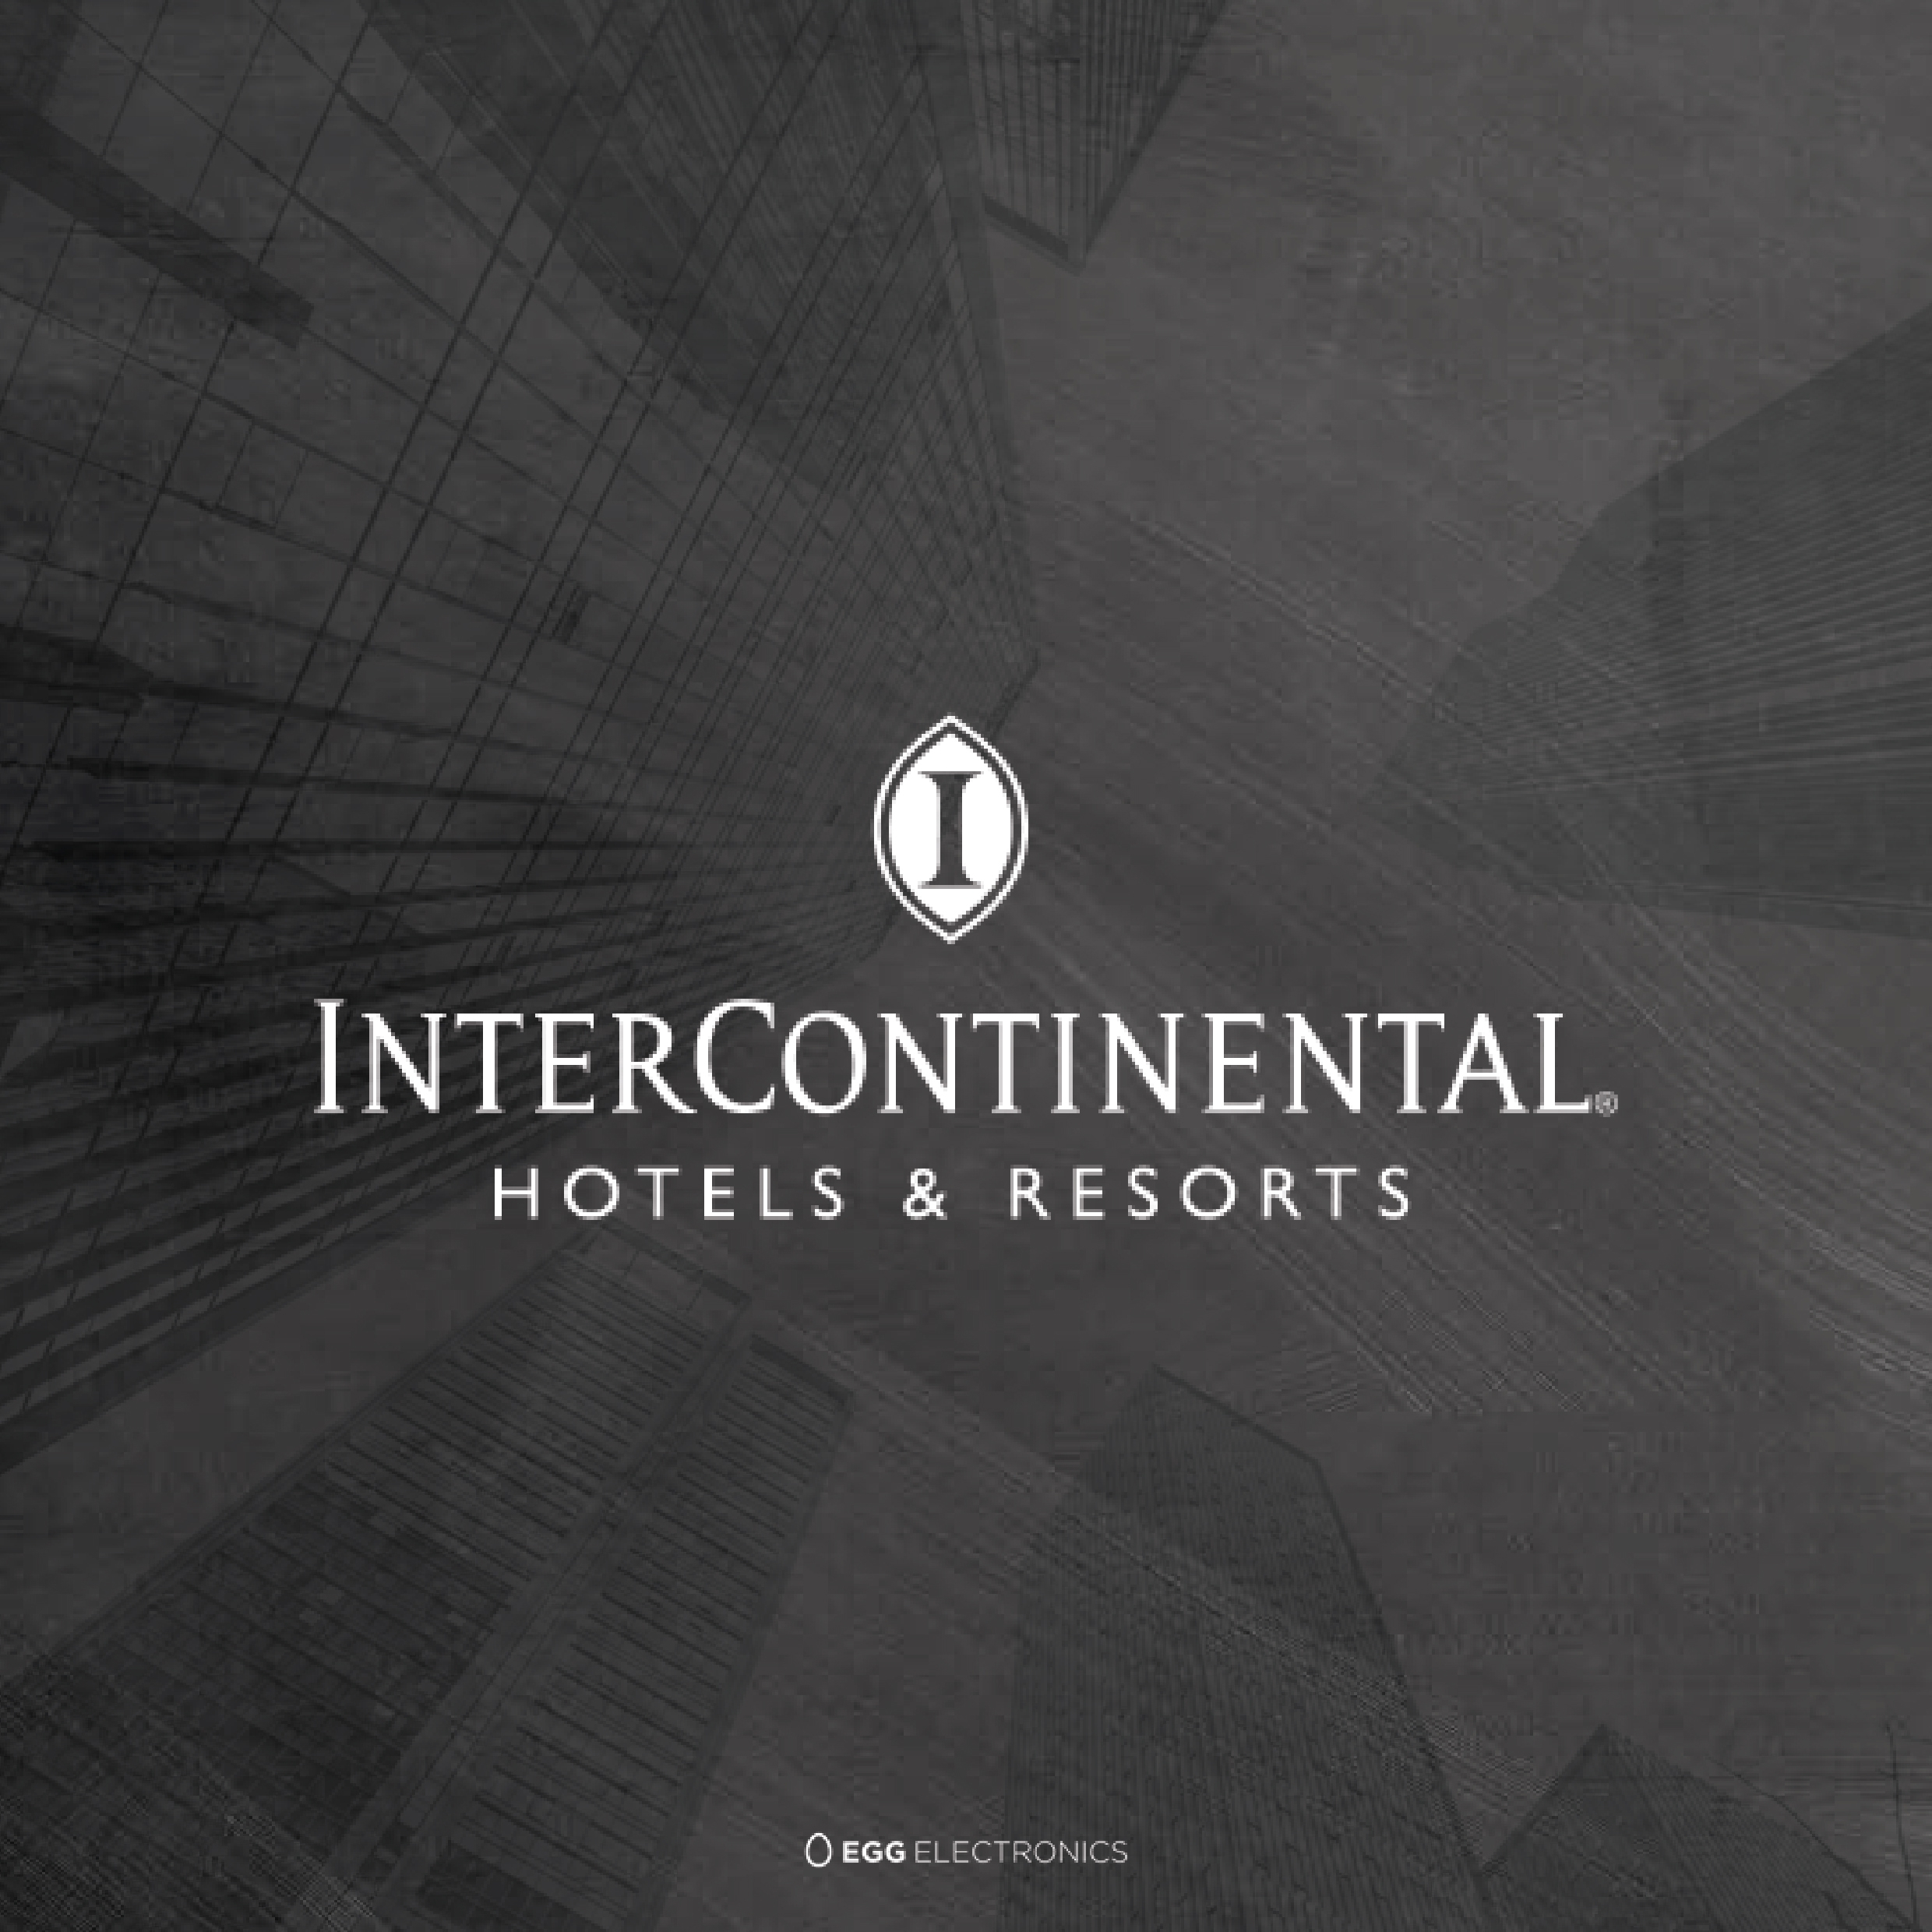 Copy of Intercontinental Hotels & Resorts